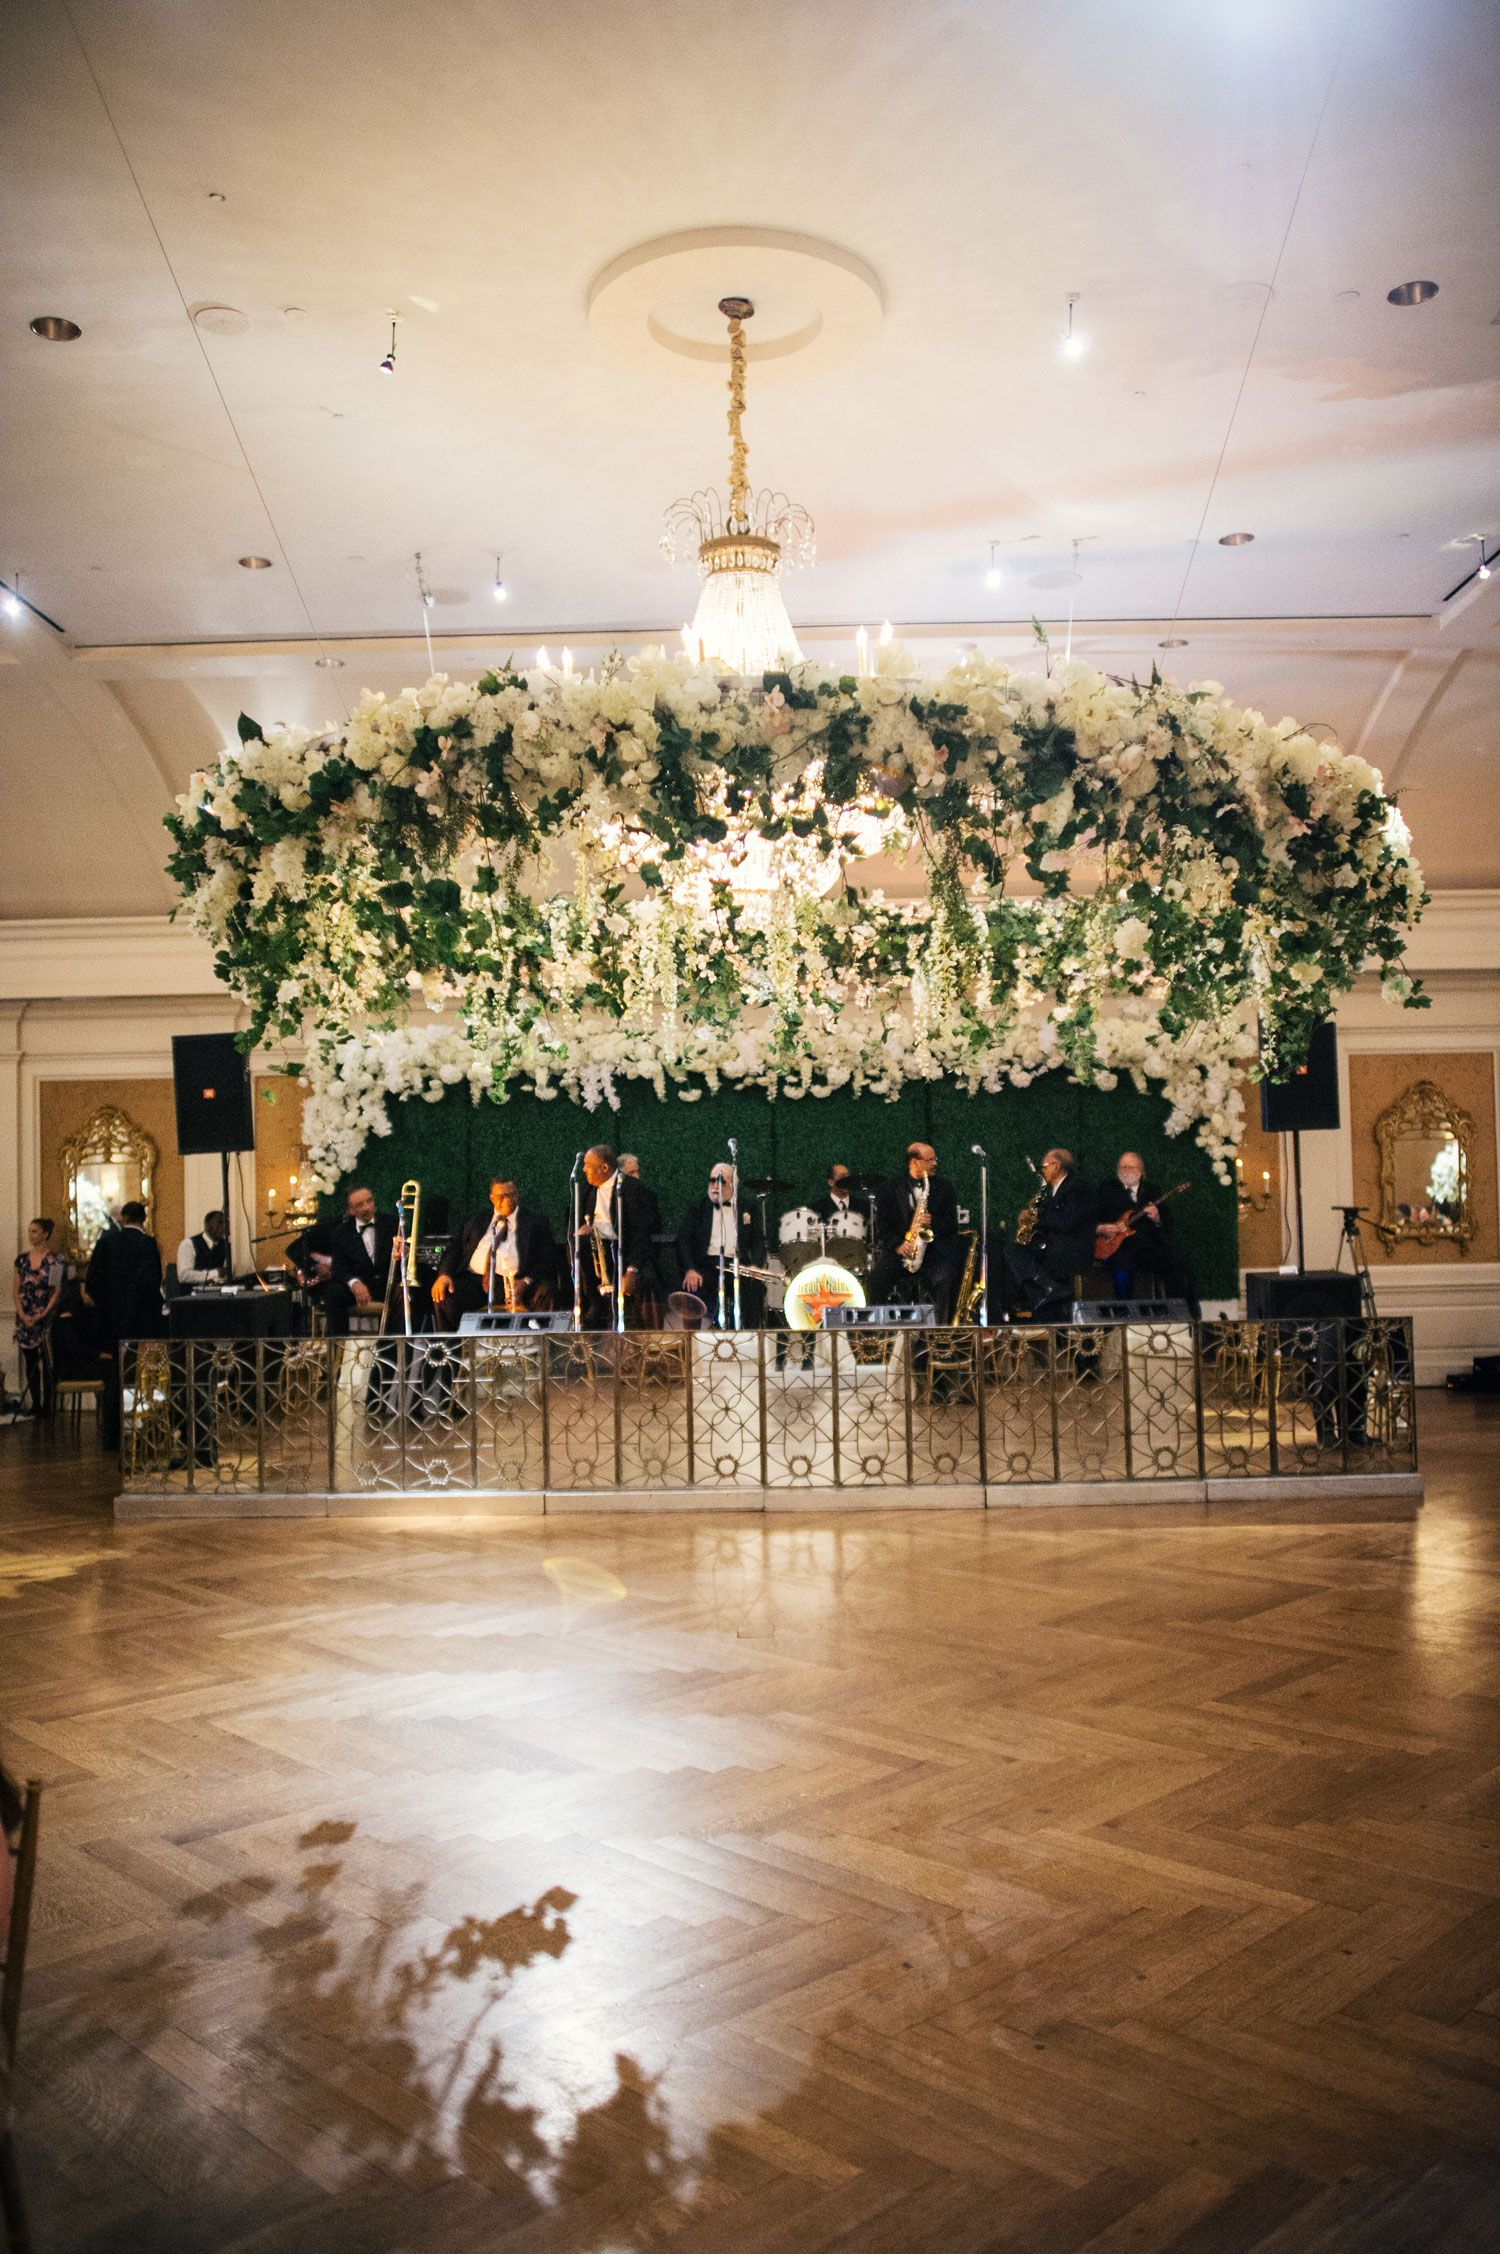 Remarkable Ceiling Installations Over The Dance Floor Wedding Ceiling Decorations Wedding Ceiling Dance Floor Wedding